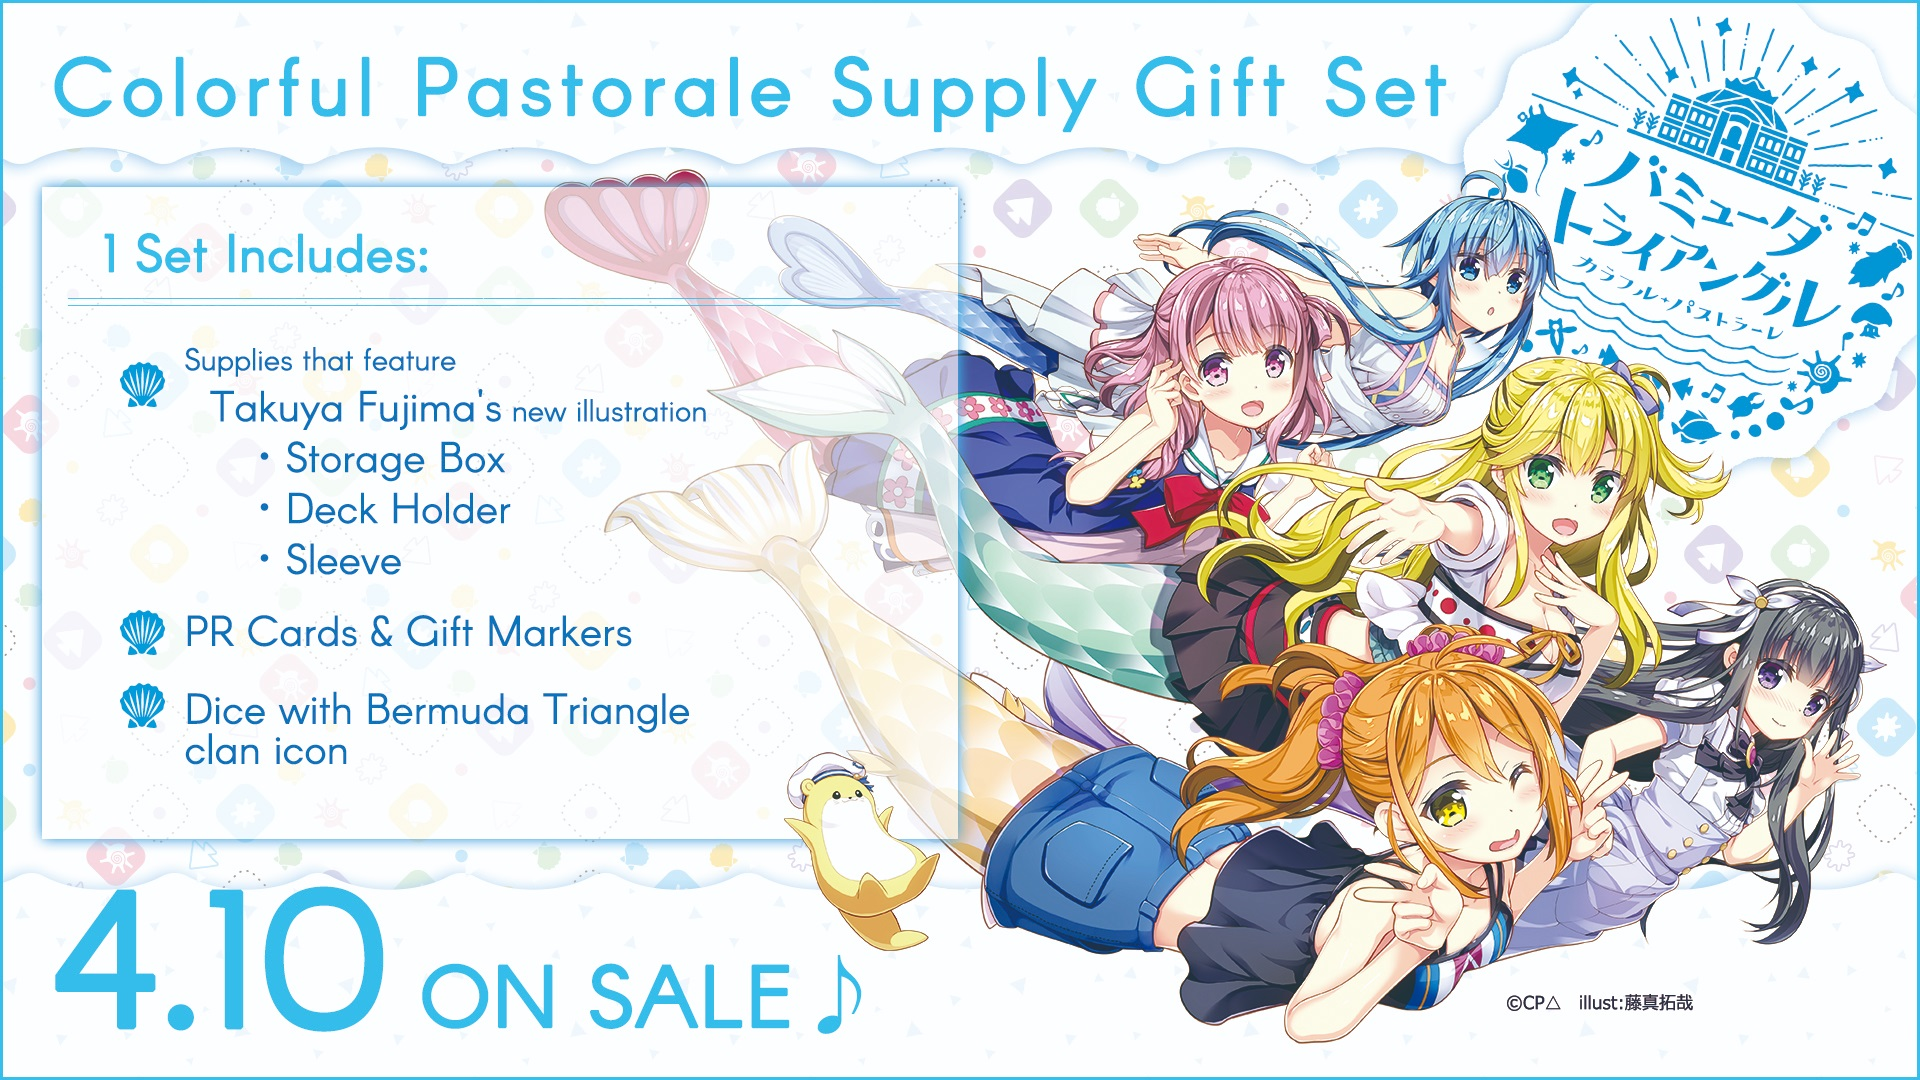 Special Series 02: Colorful Pastorale Supply Gift Set